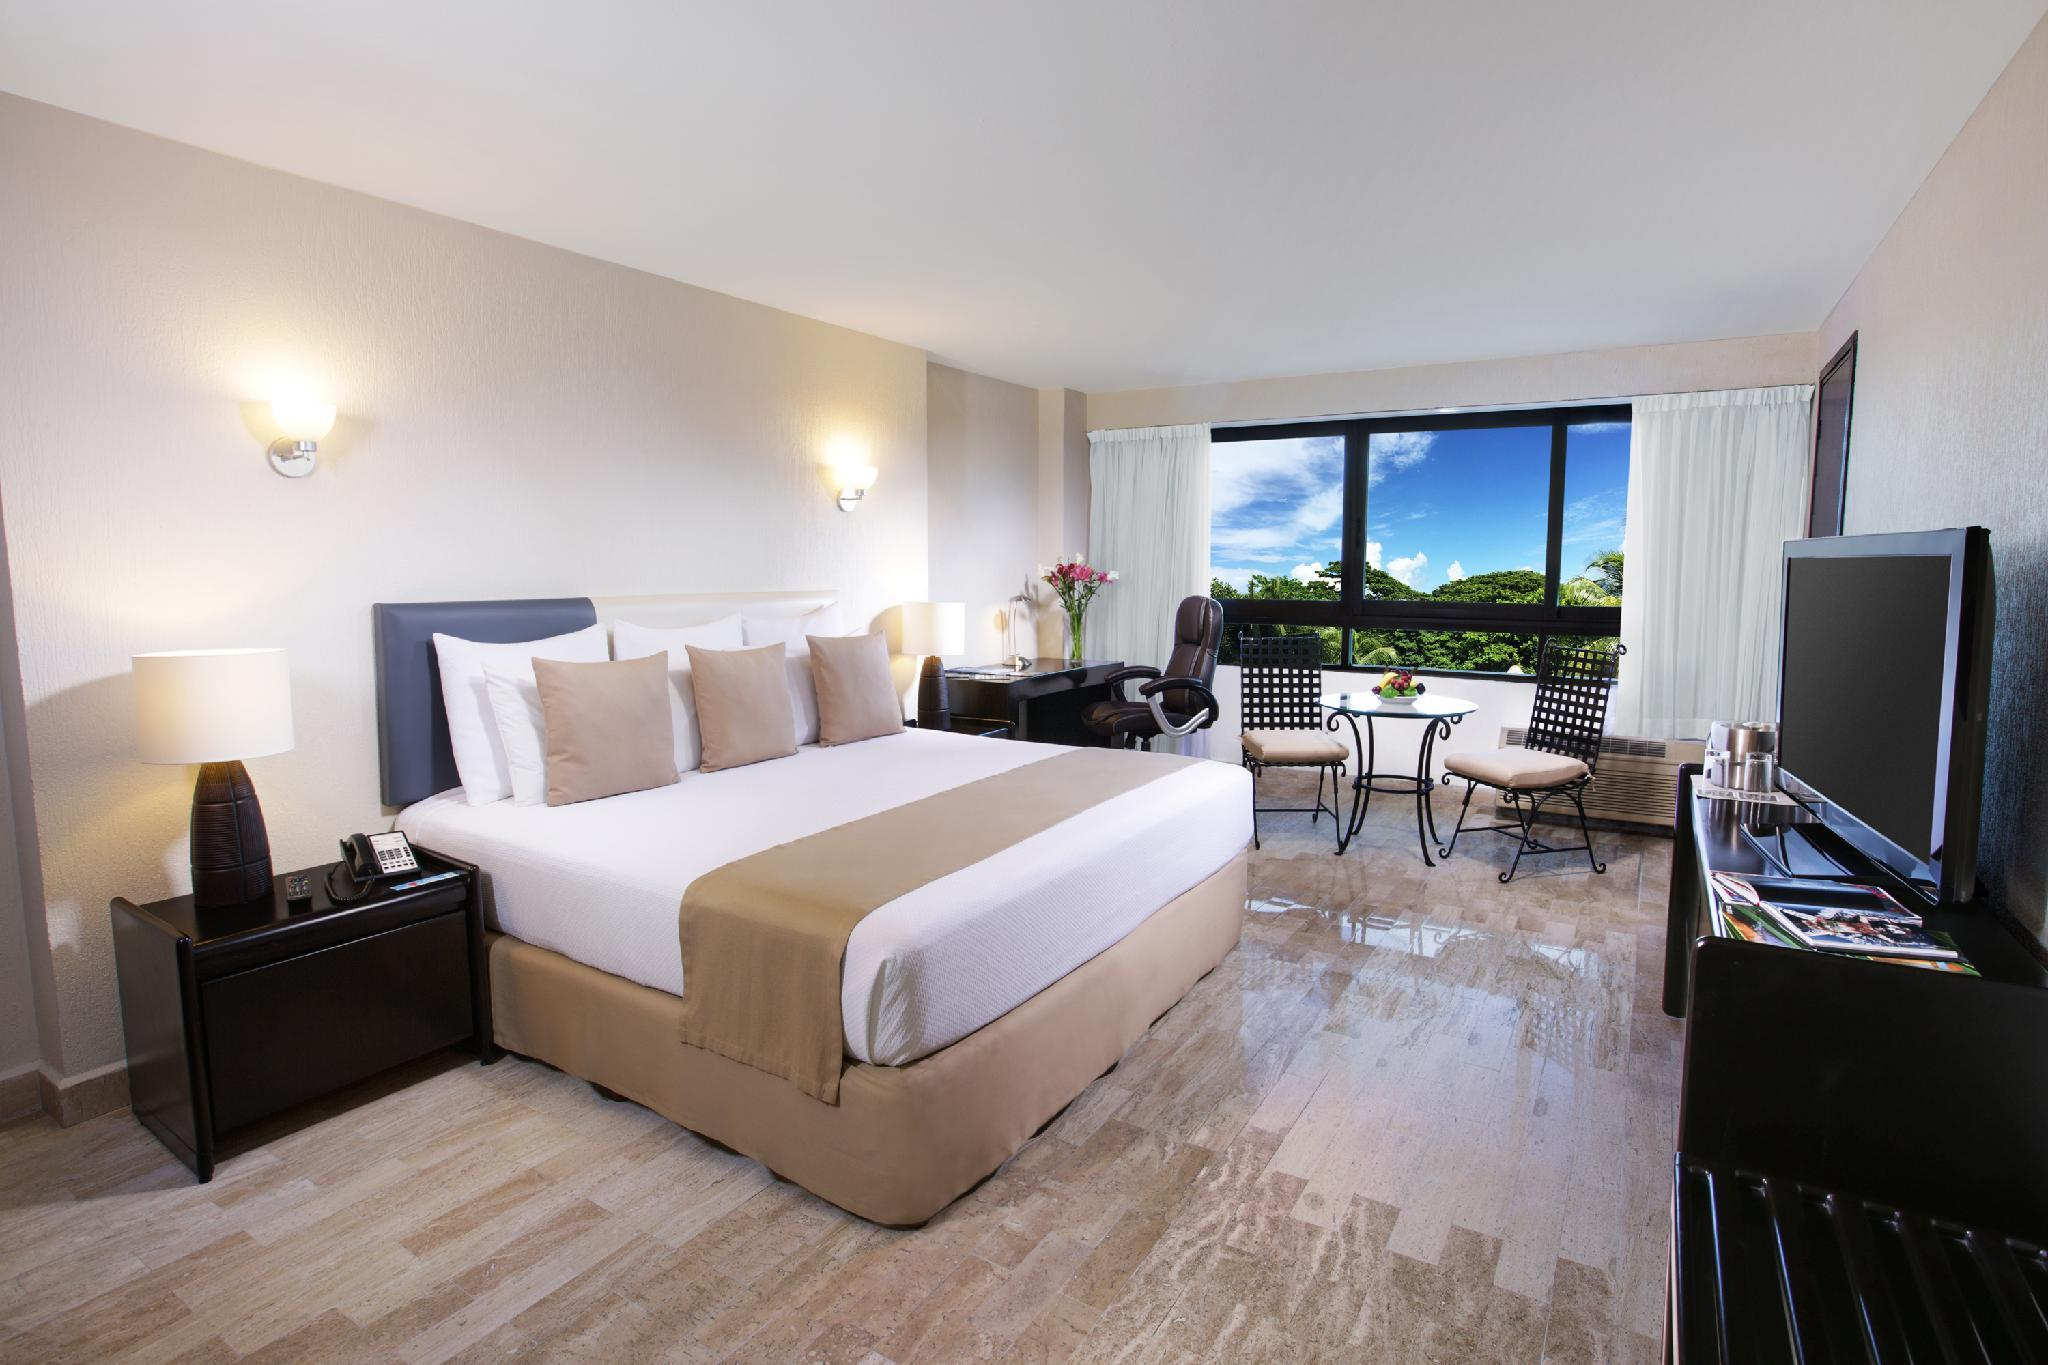 Smart Cancun by Oasis Reviews